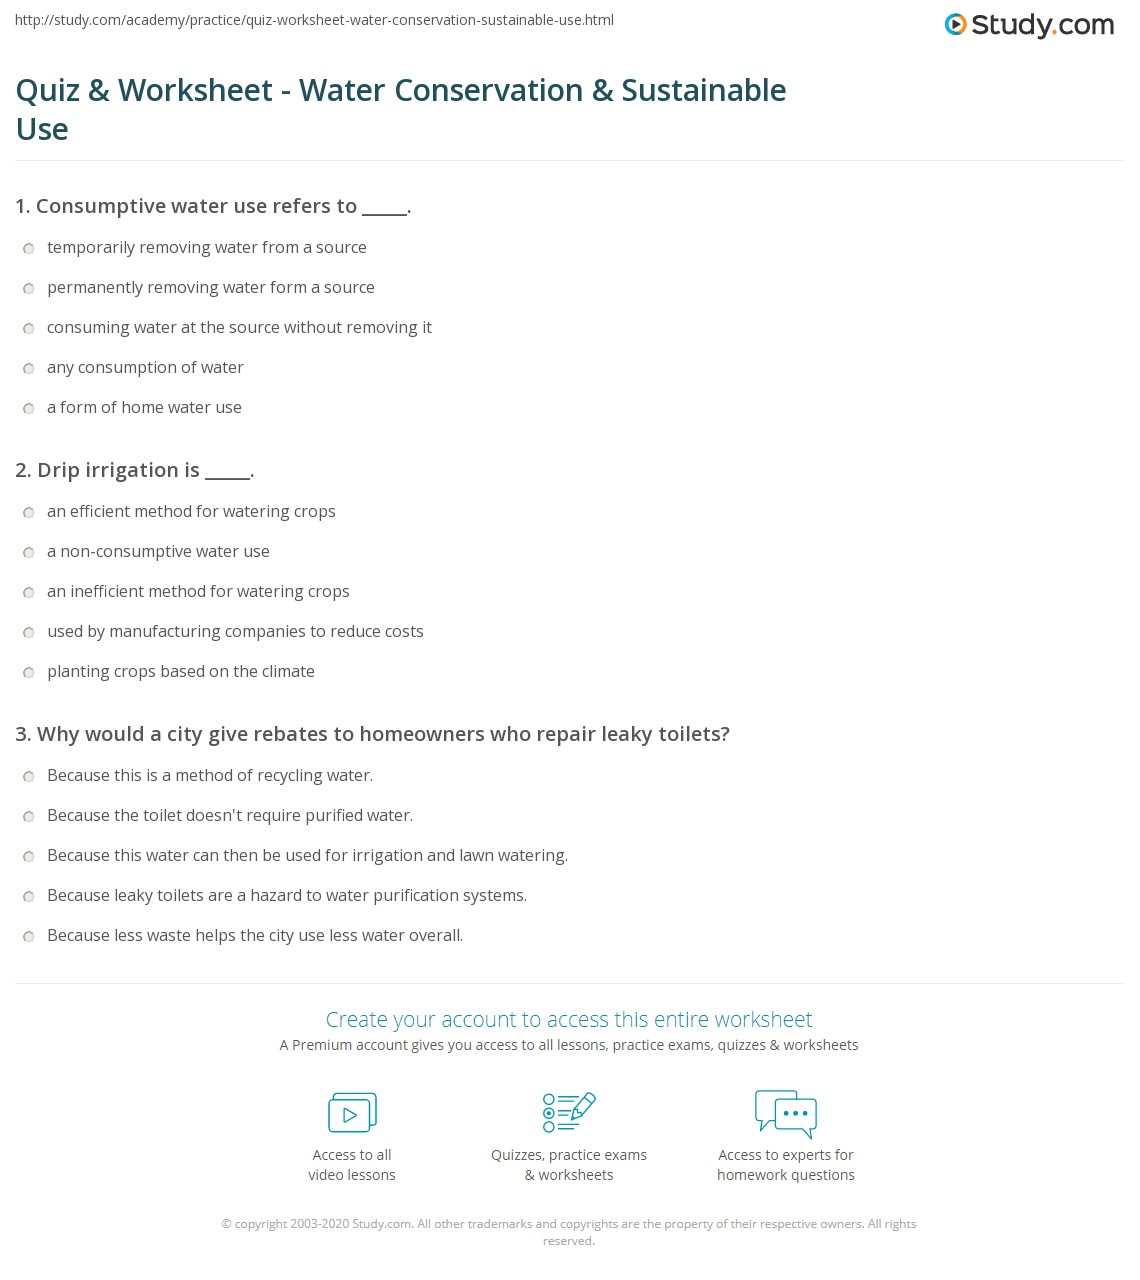 Printables Water Conservation Worksheets quiz worksheet water conservation sustainable use study com print how management can lead to worksheet